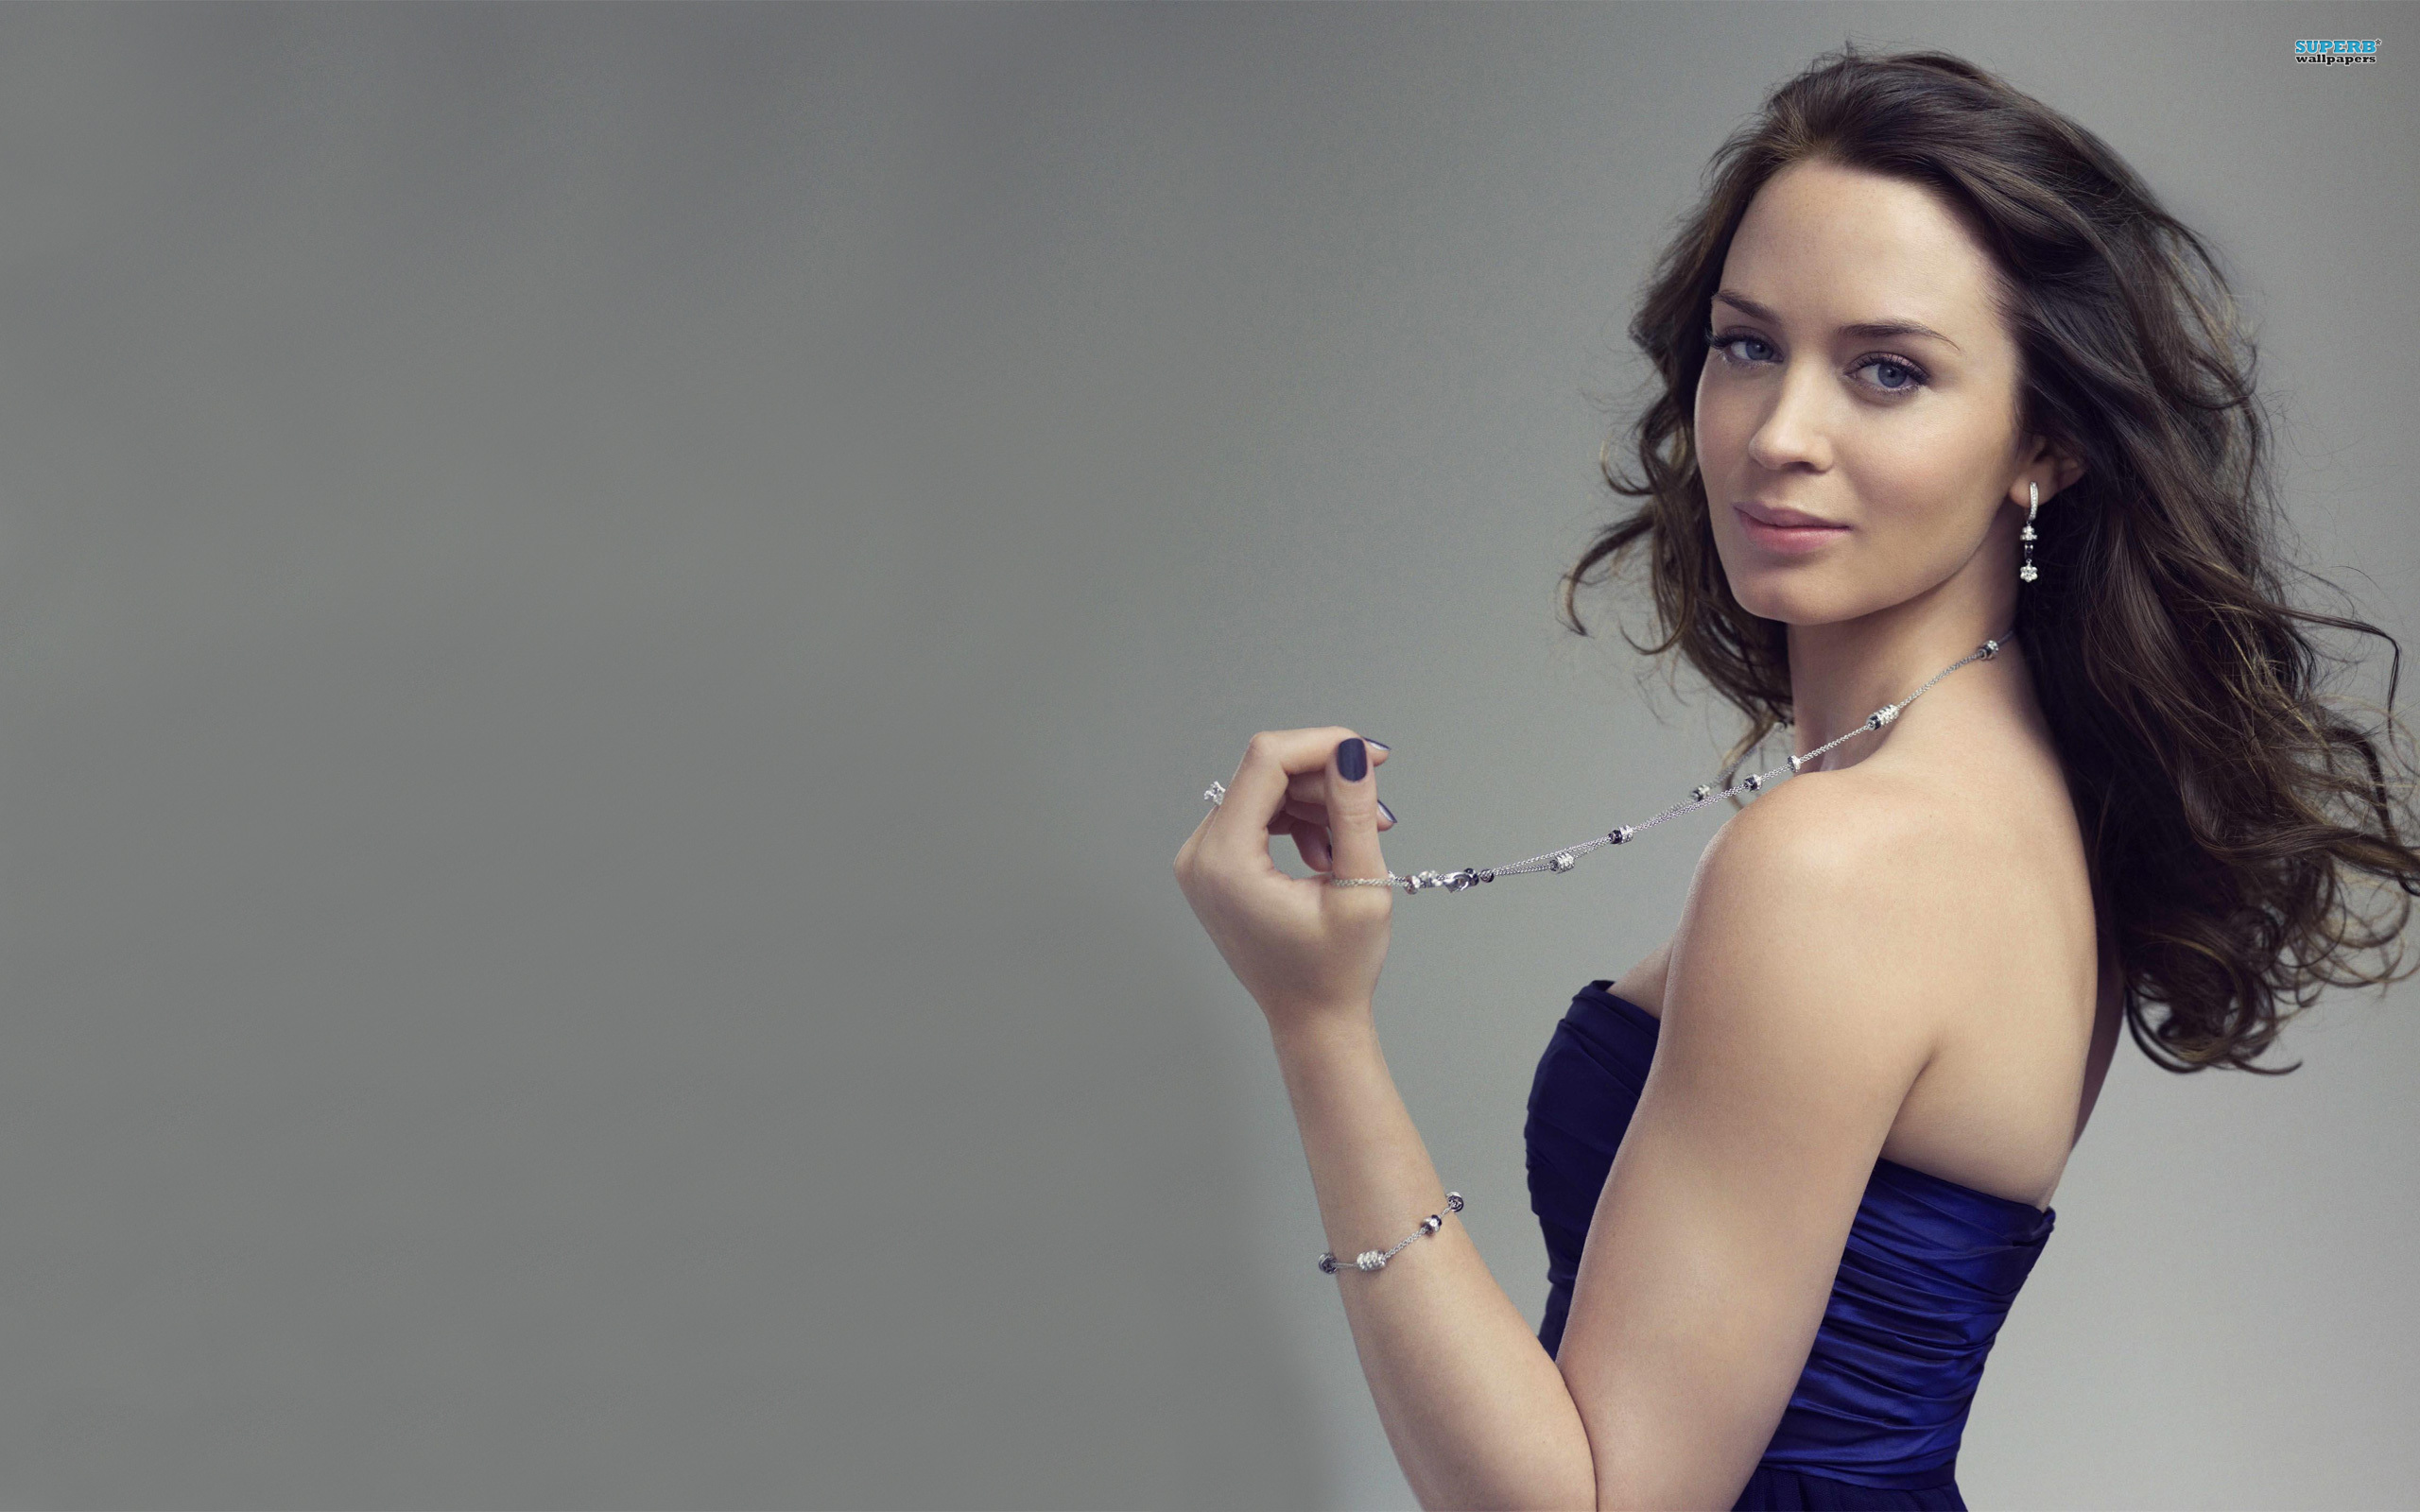 Emily Blunt Awesome Wallpaper